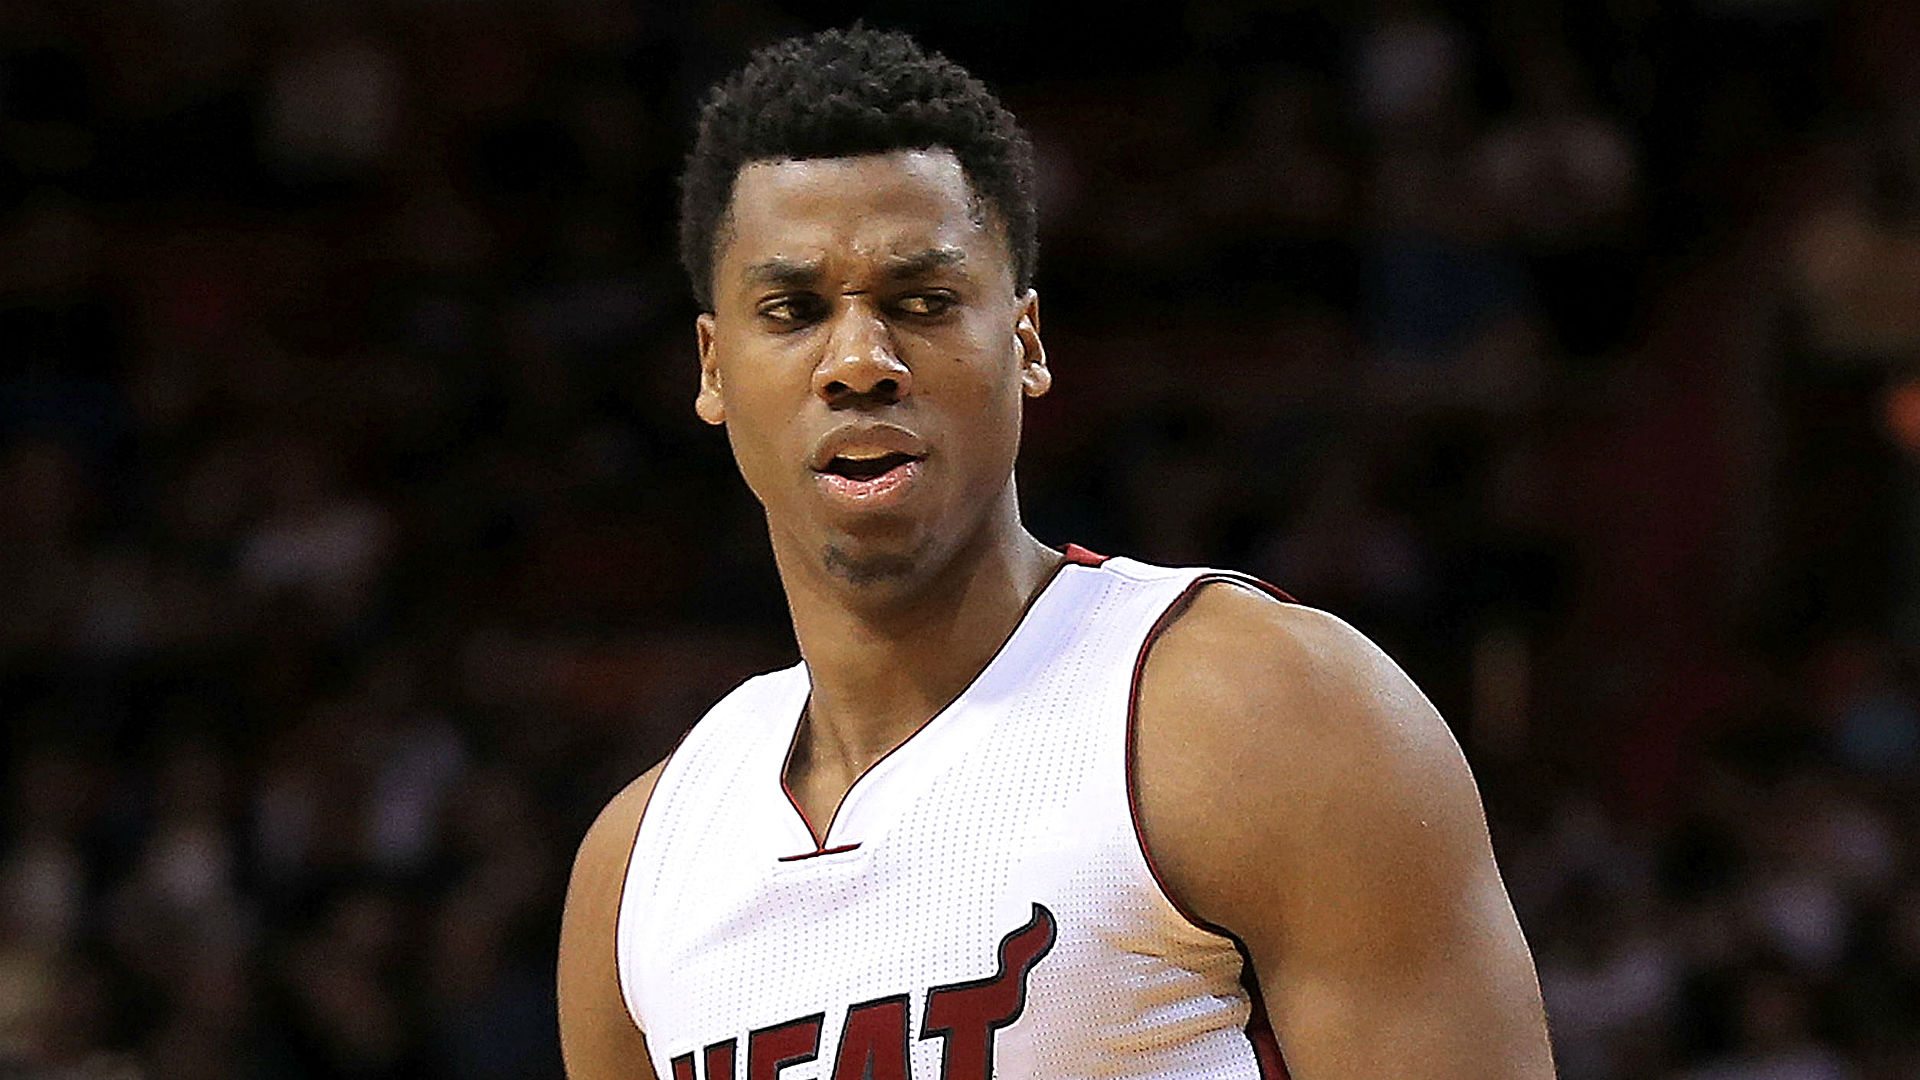 NBA trade rumors: Heat attempting to move Hassan Whiteside, Tyler Johnson